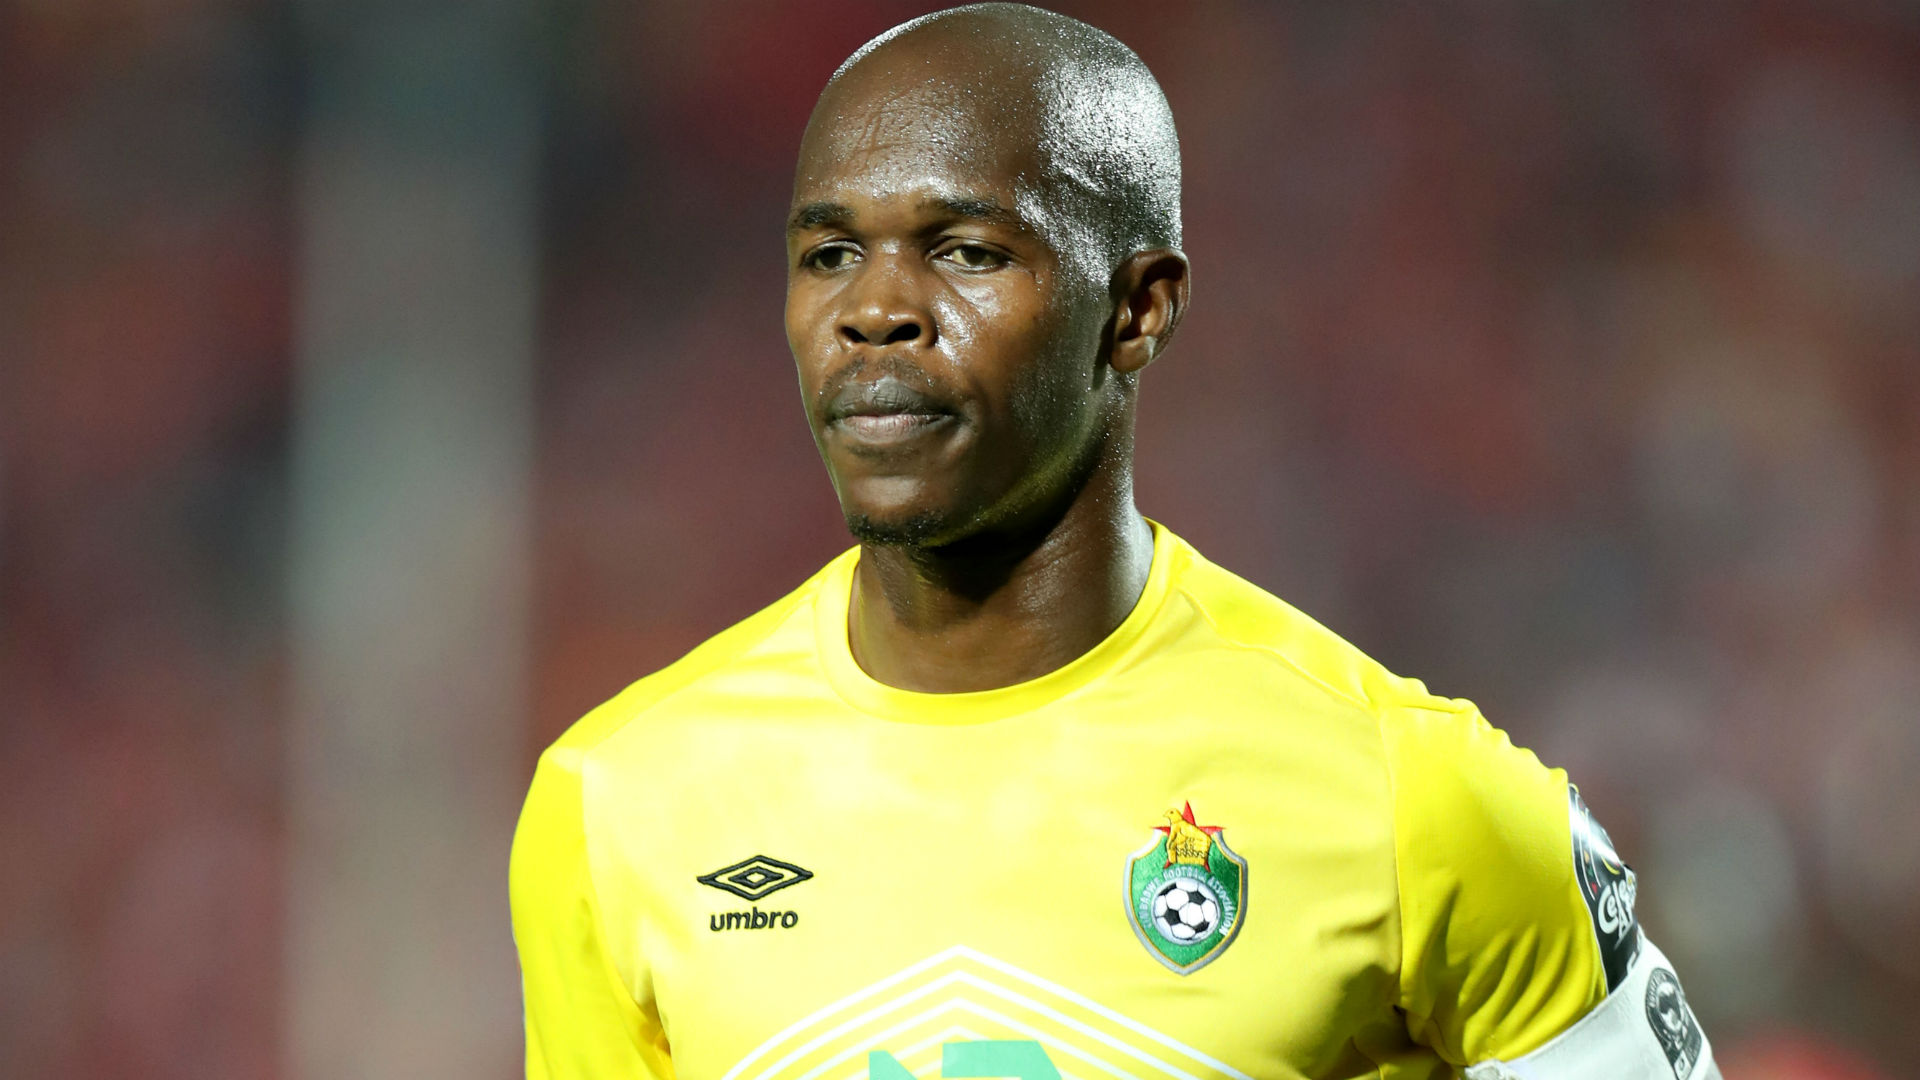 Mamelodi Sundowns target Musona scores on AS Eupen debut